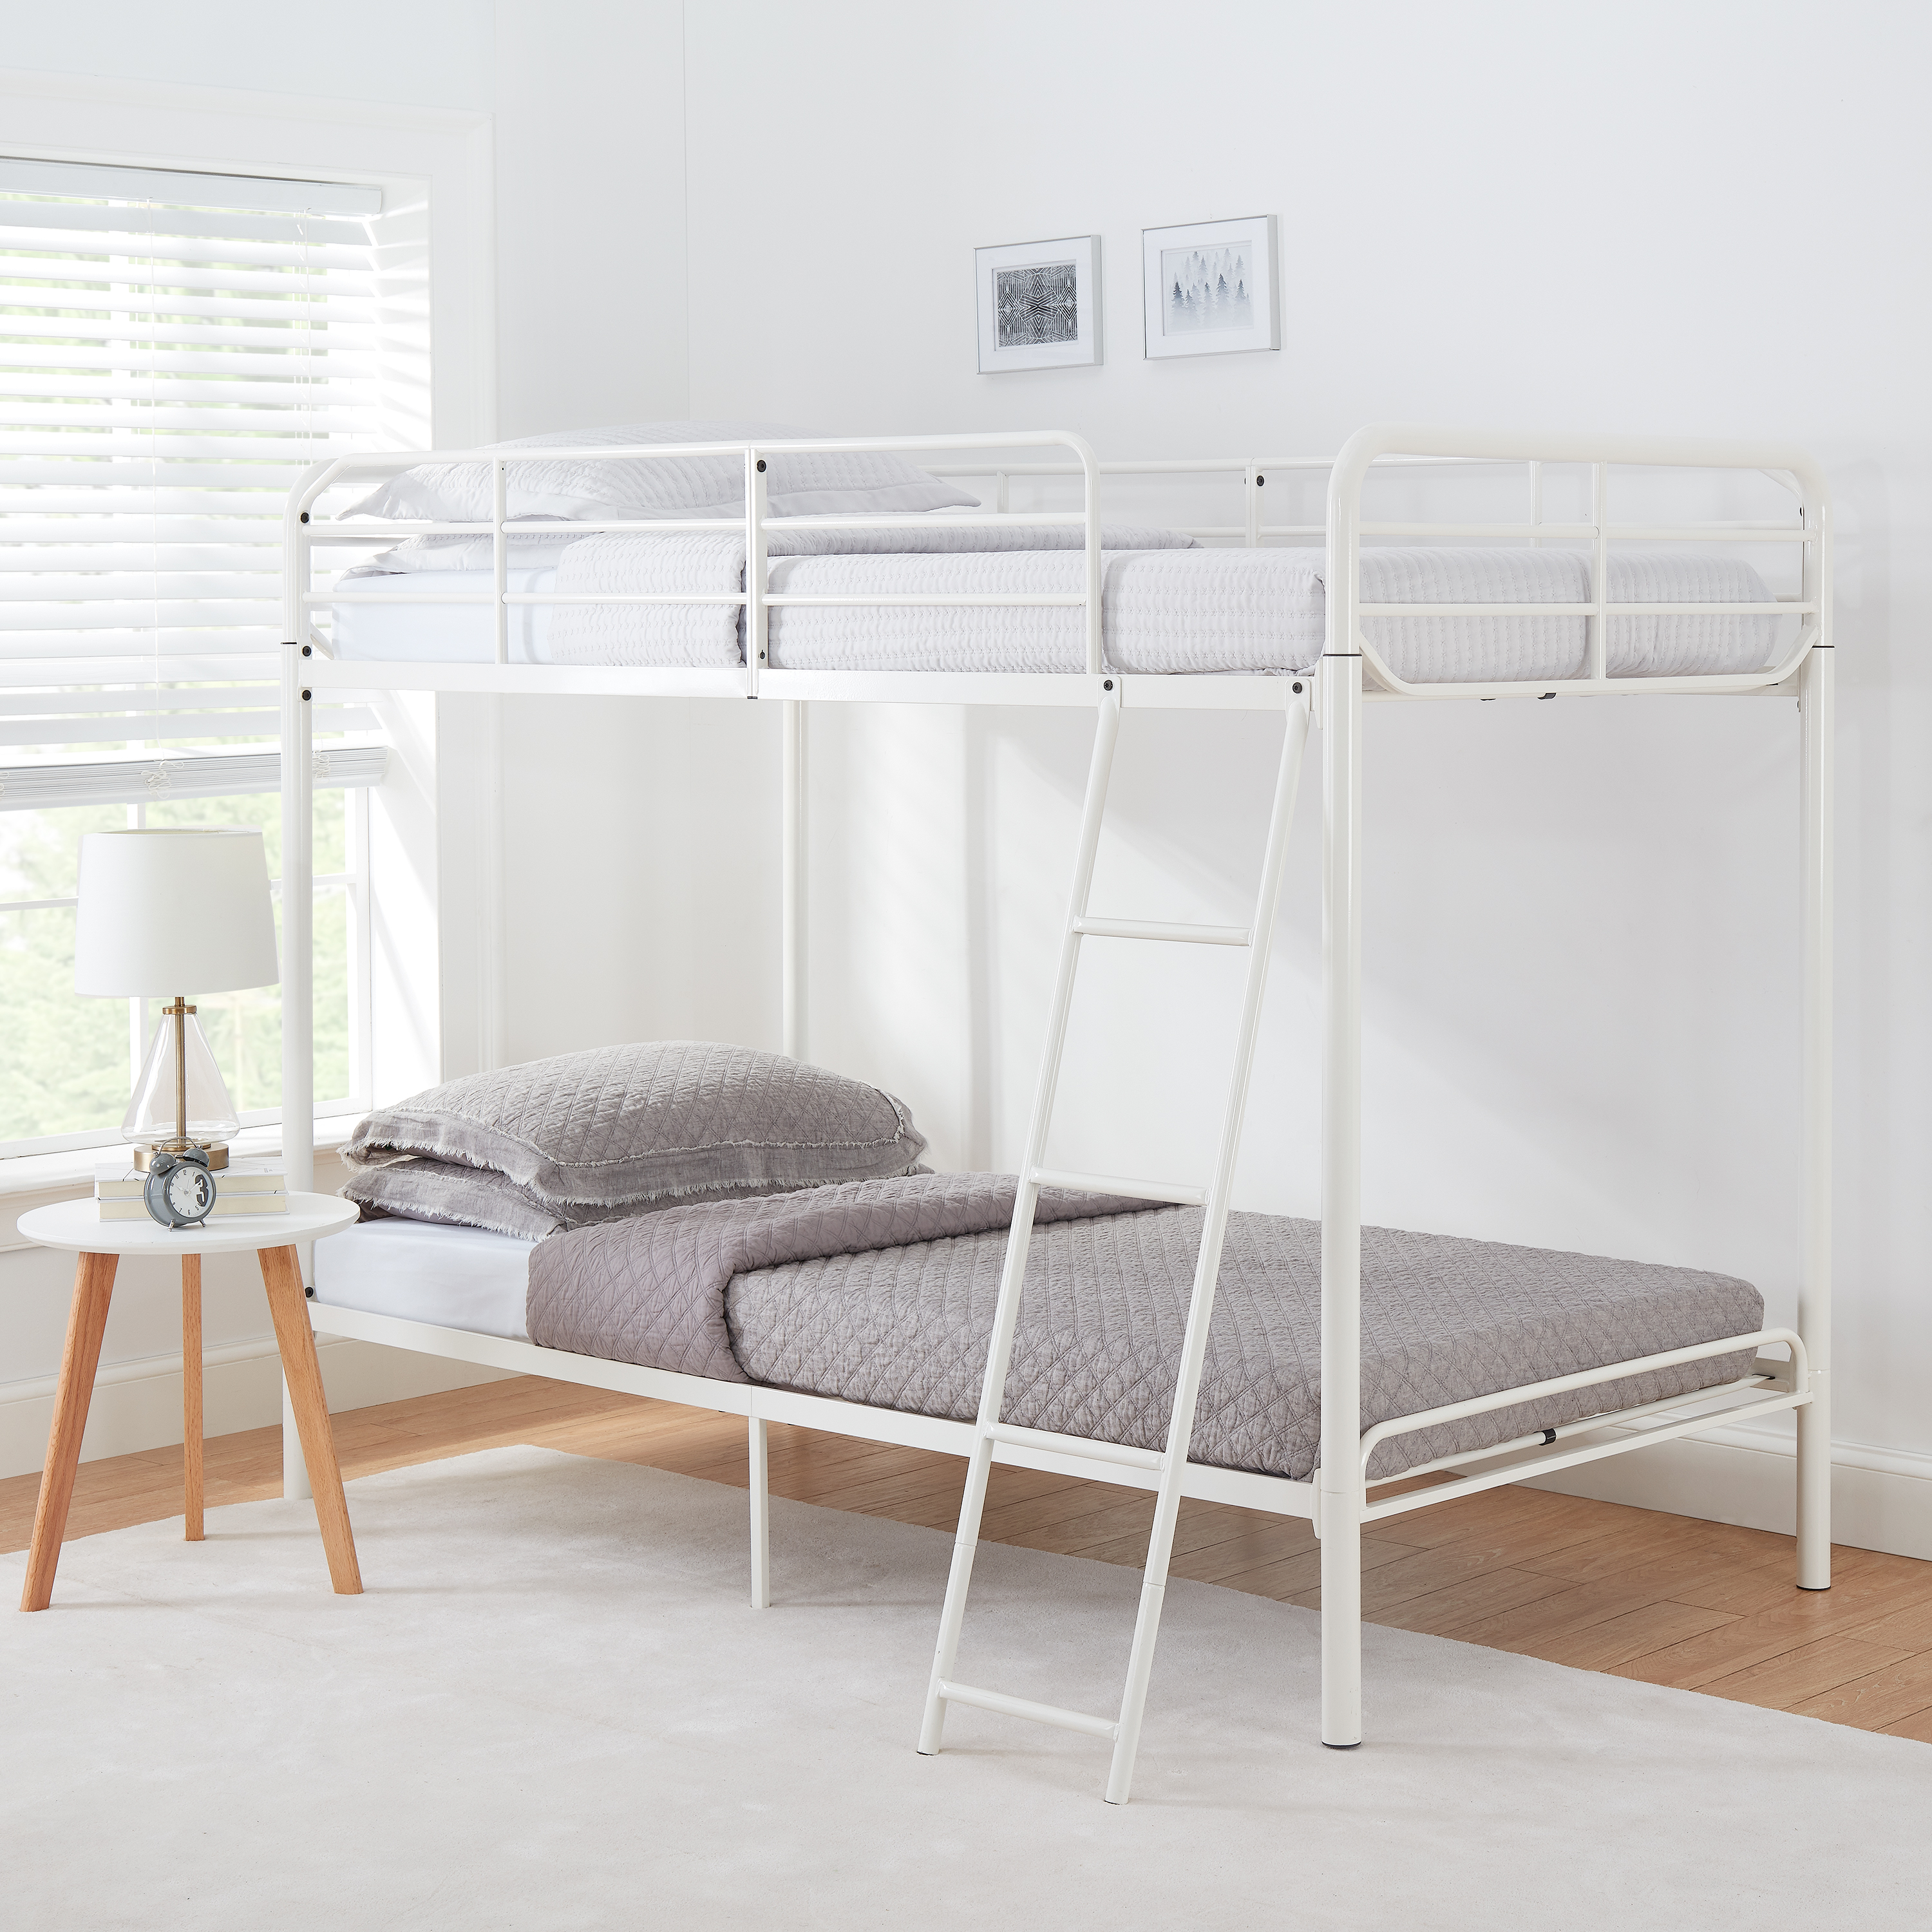 Picture of: Mainstays Metal Bunk Bed Only 99 Shipped On Walmart Com Regularly 140 Hip2save